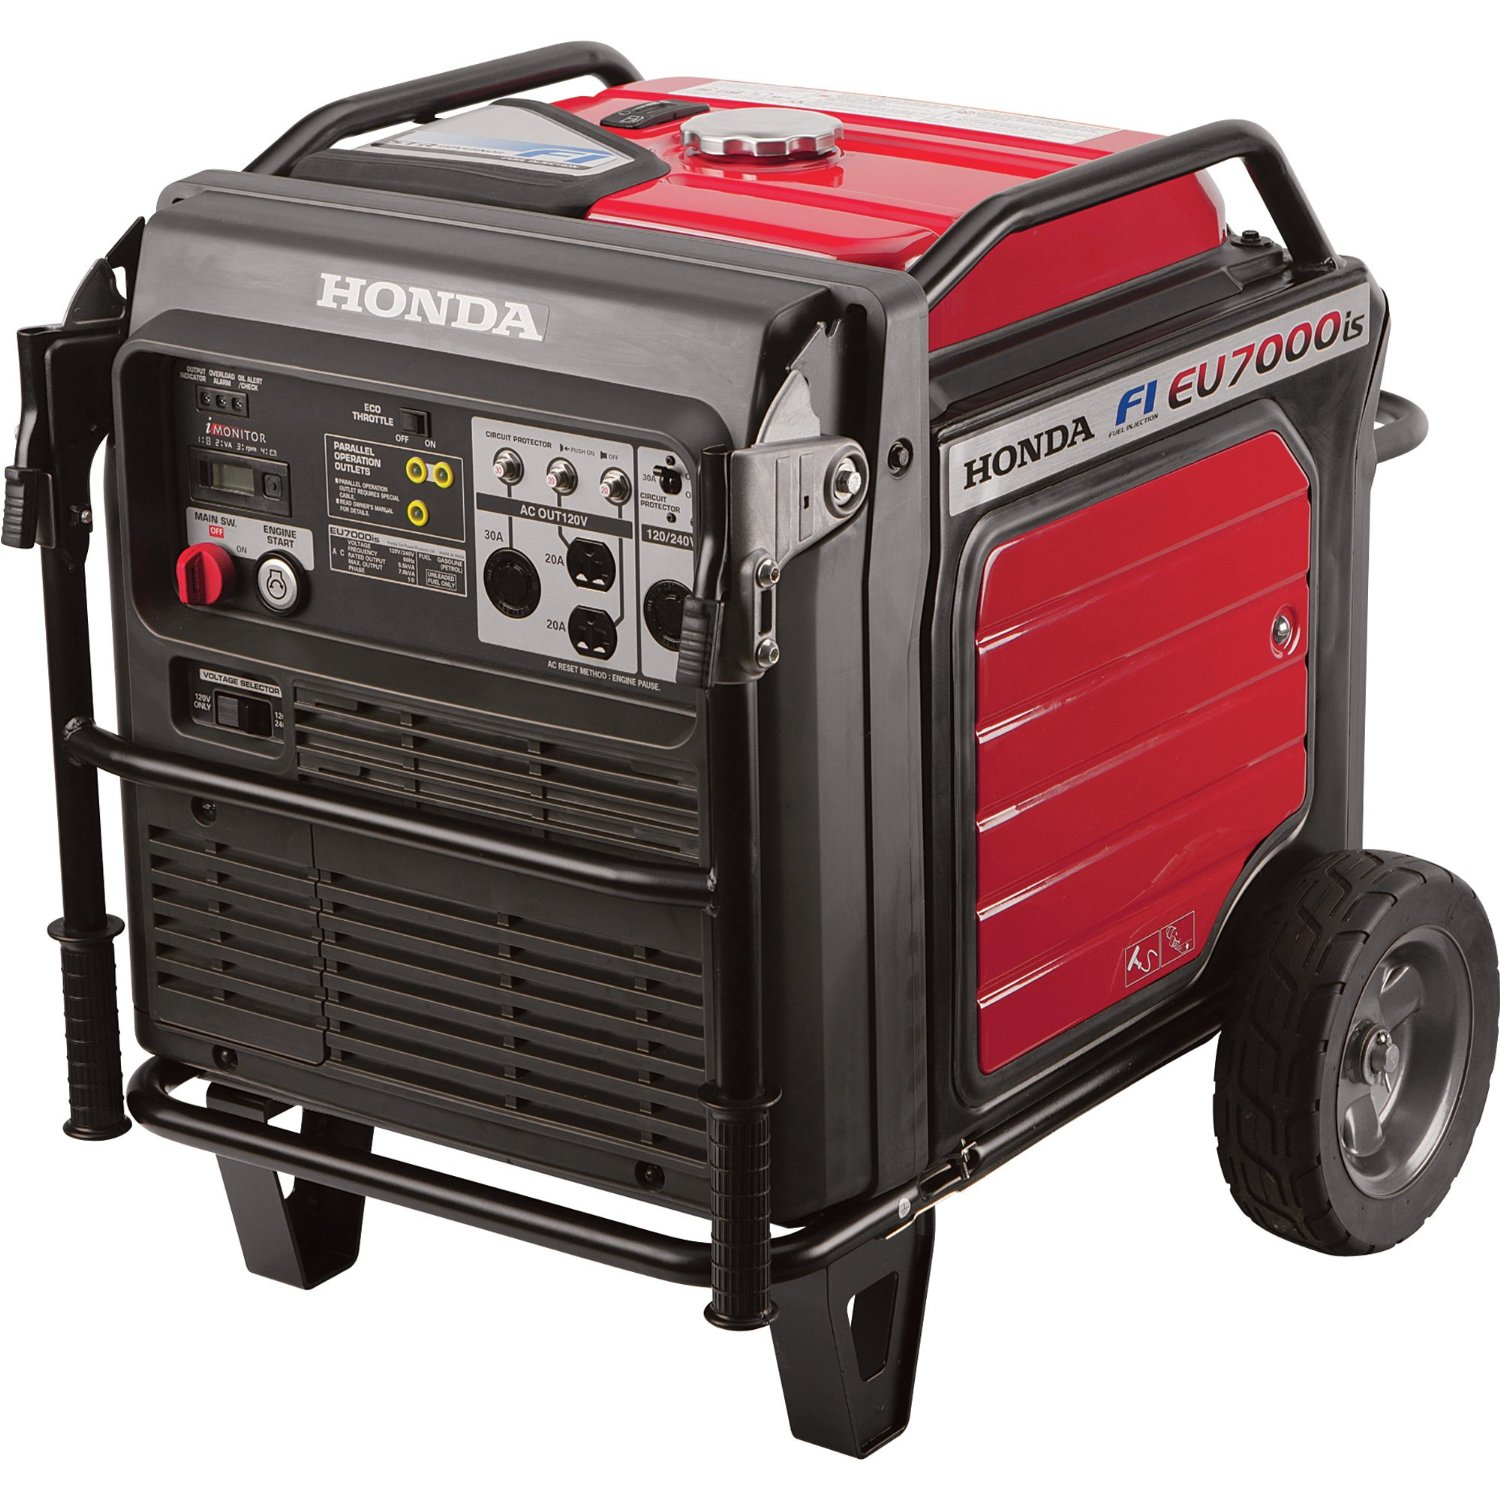 hight resolution of a honda generator can keep power going when a storm cuts your home s connection to the grid so you can keep televisions radios and phones on to monitor